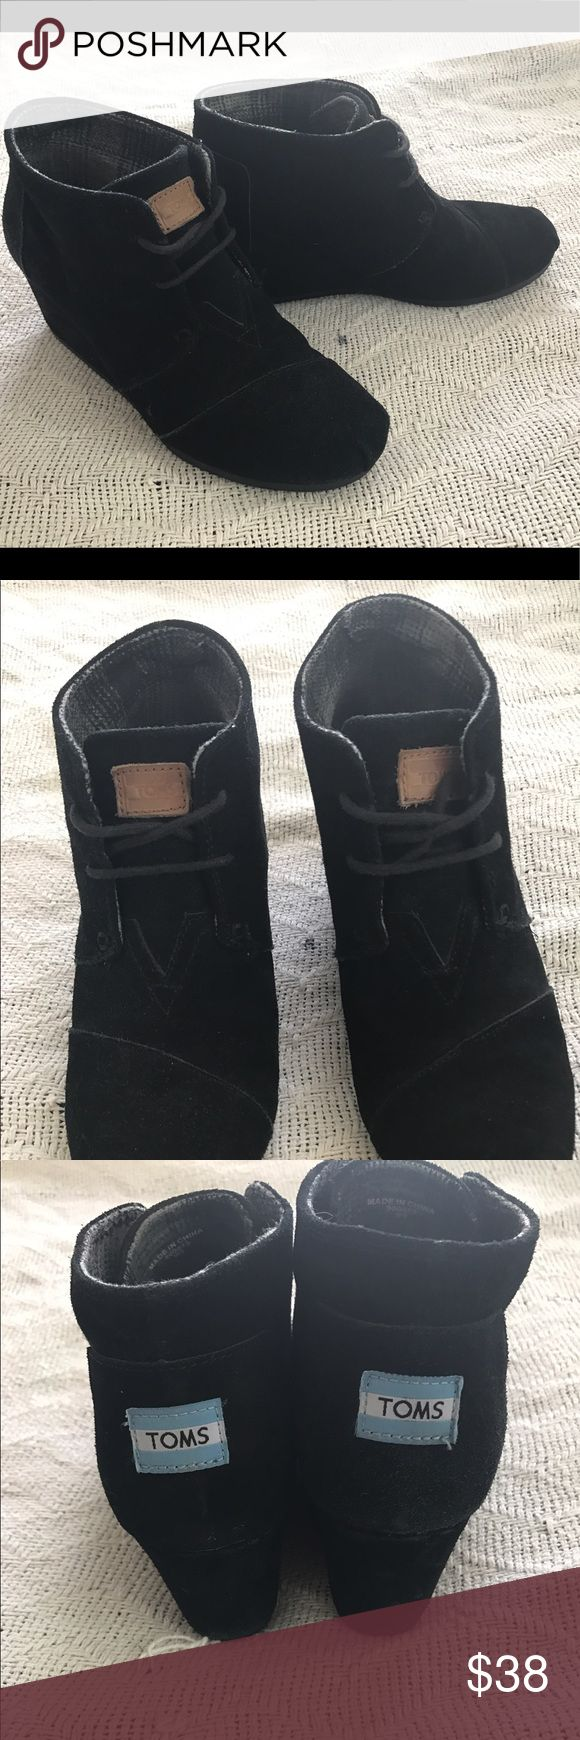 TOMS Desert Wedge Booties Adorable TOMS Desert Wedge shoes! Typical wear shown in photos, no major damage or tears in fabric. TOMS Shoes Ankle Boots & Booties